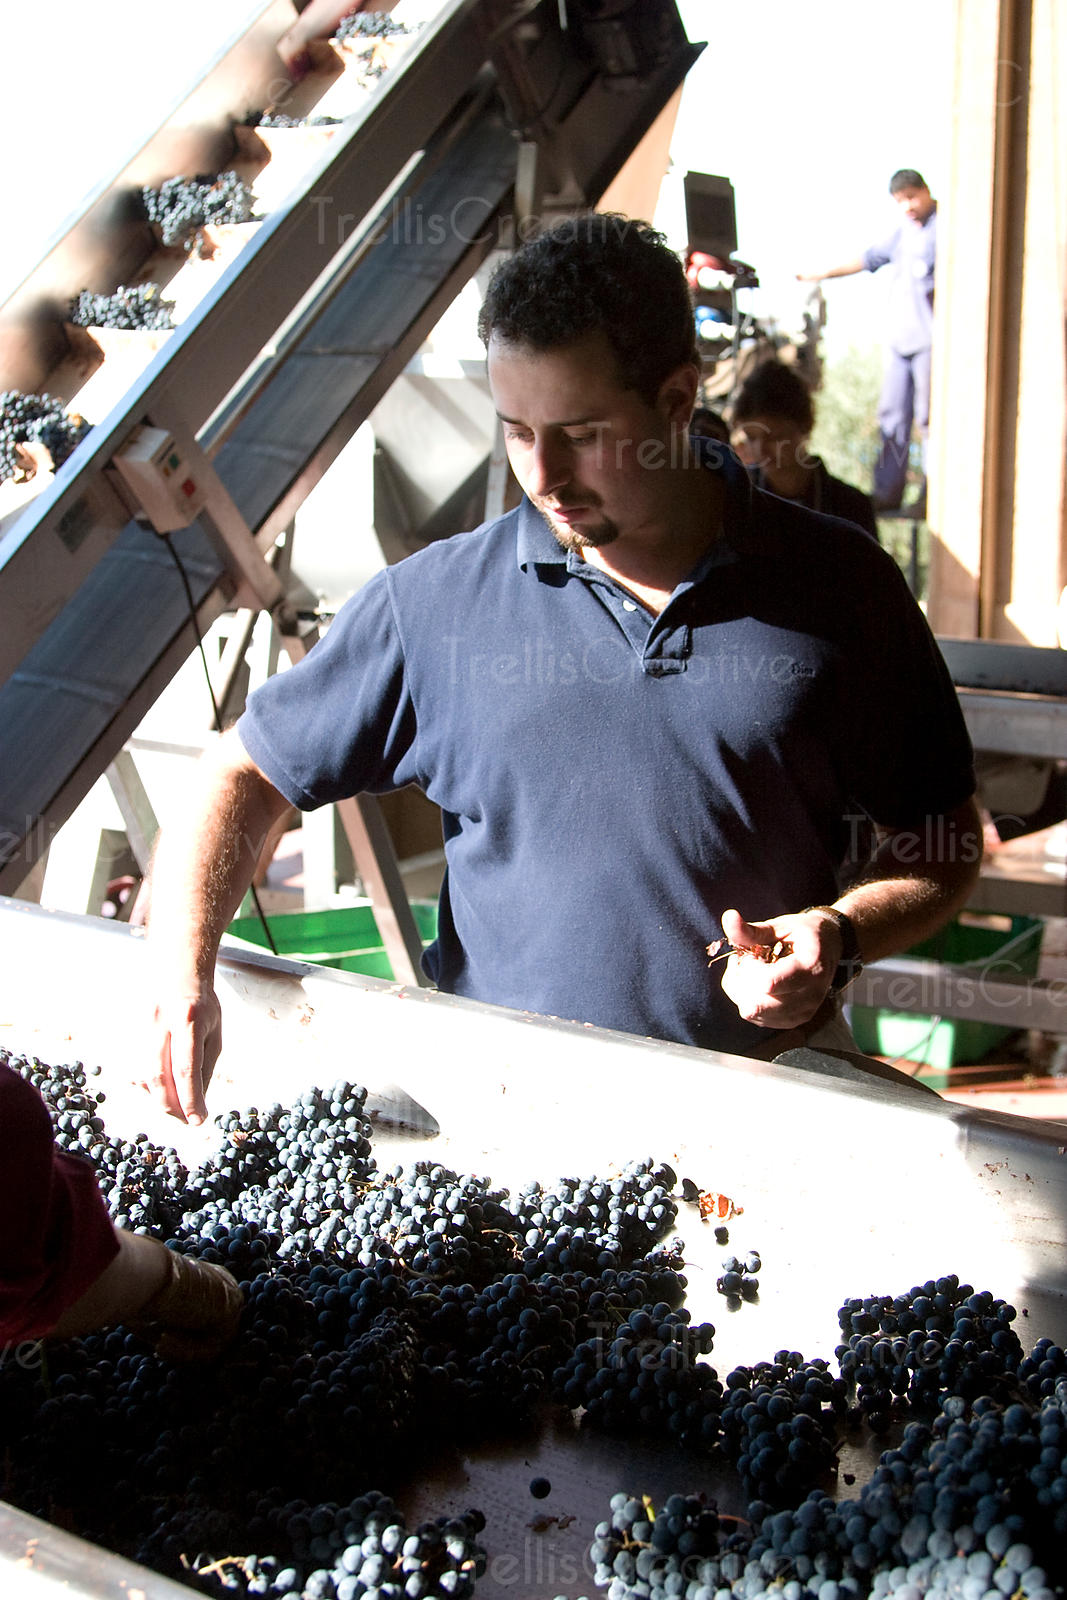 A young male winemaker sorts red grapes on a winery sorting table